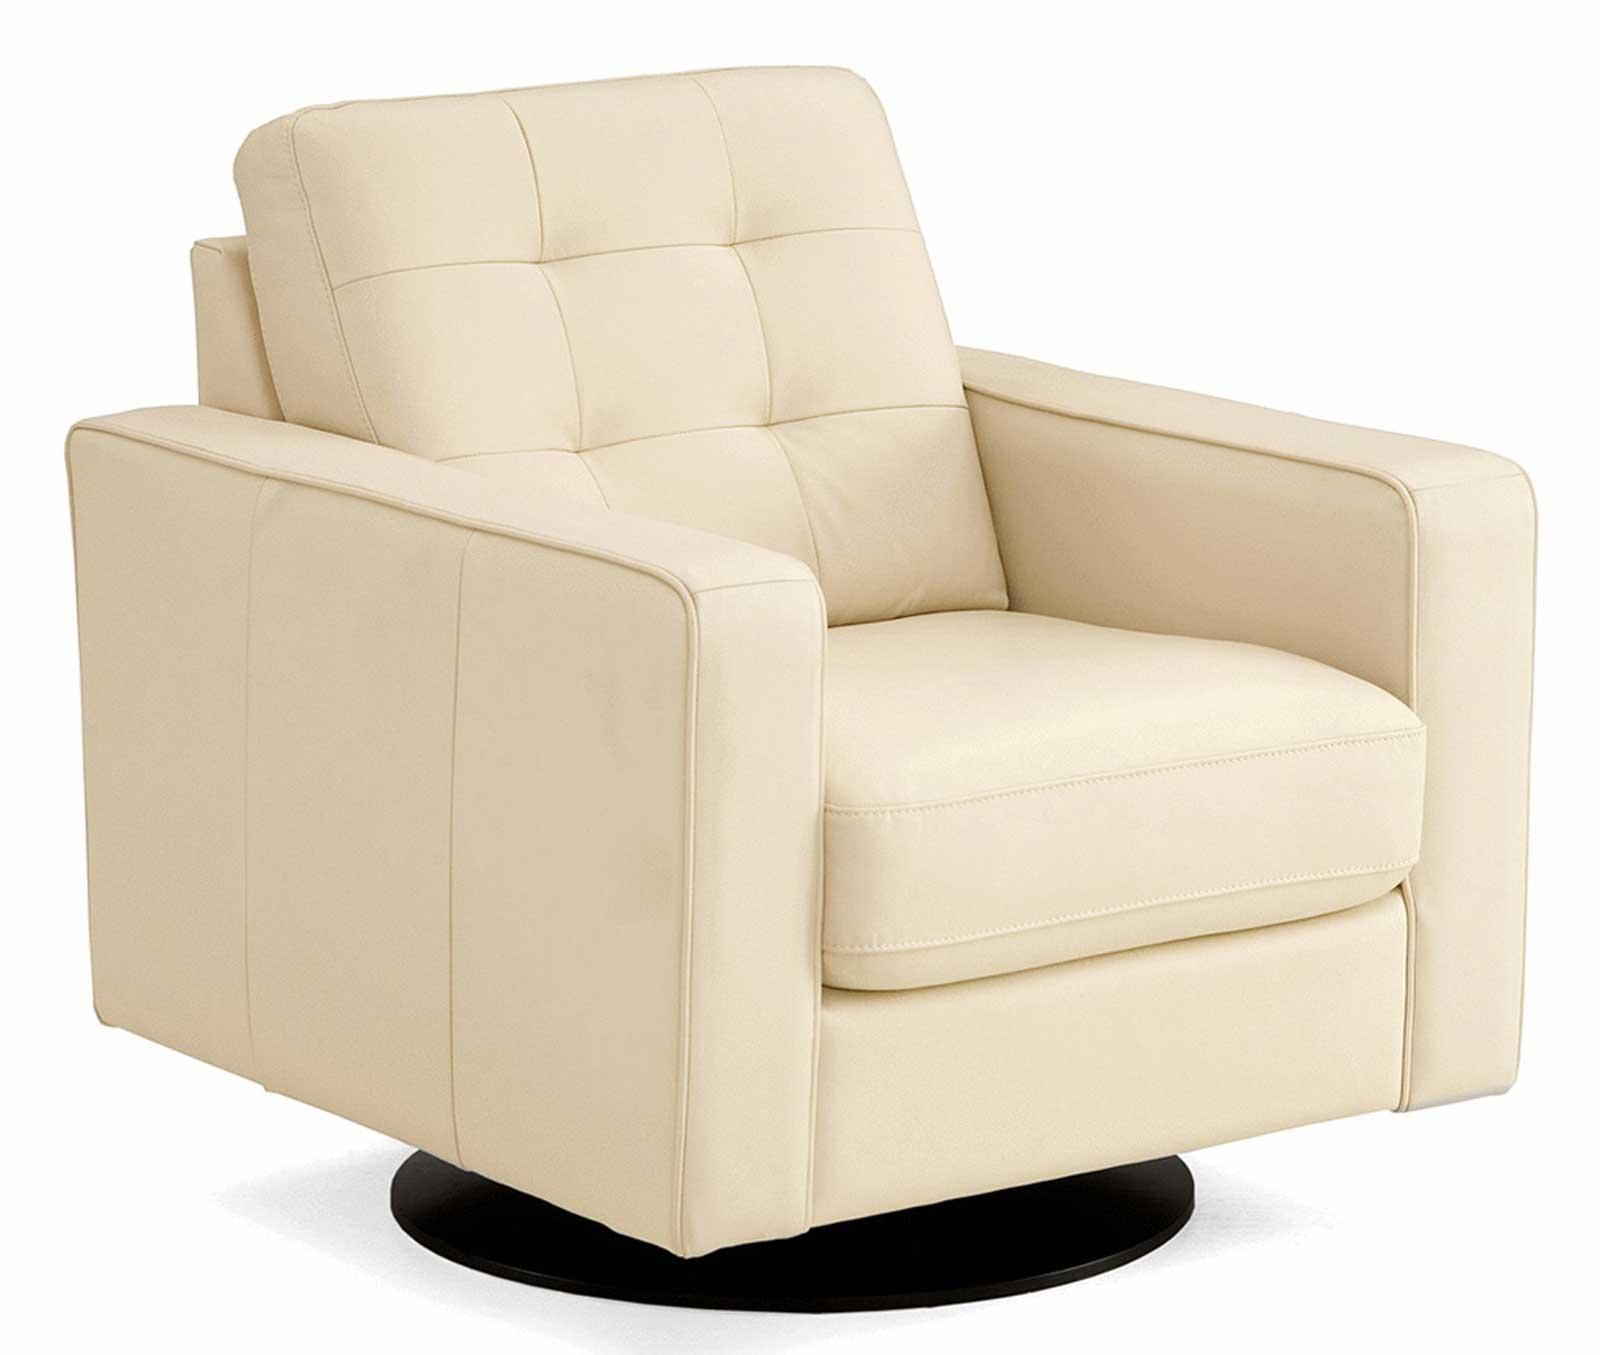 Splendid Design Inspiration Swivel Rocking Chairs For Living Room With Sofa Rocking Chairs (View 17 of 20)